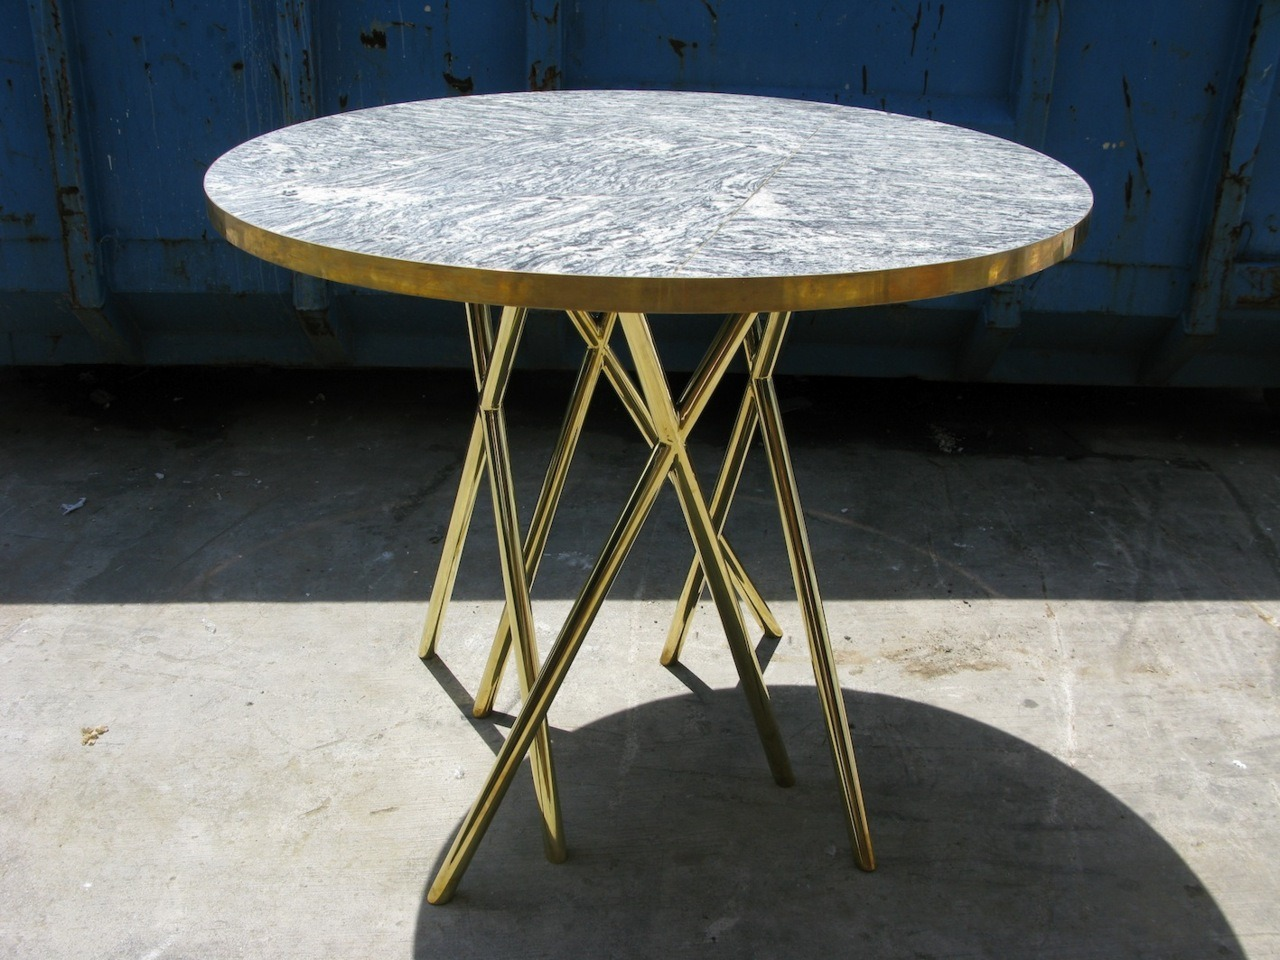 Bar table we have designed for Overeasy, fabricated from polished brass and marble top with brass inserts.